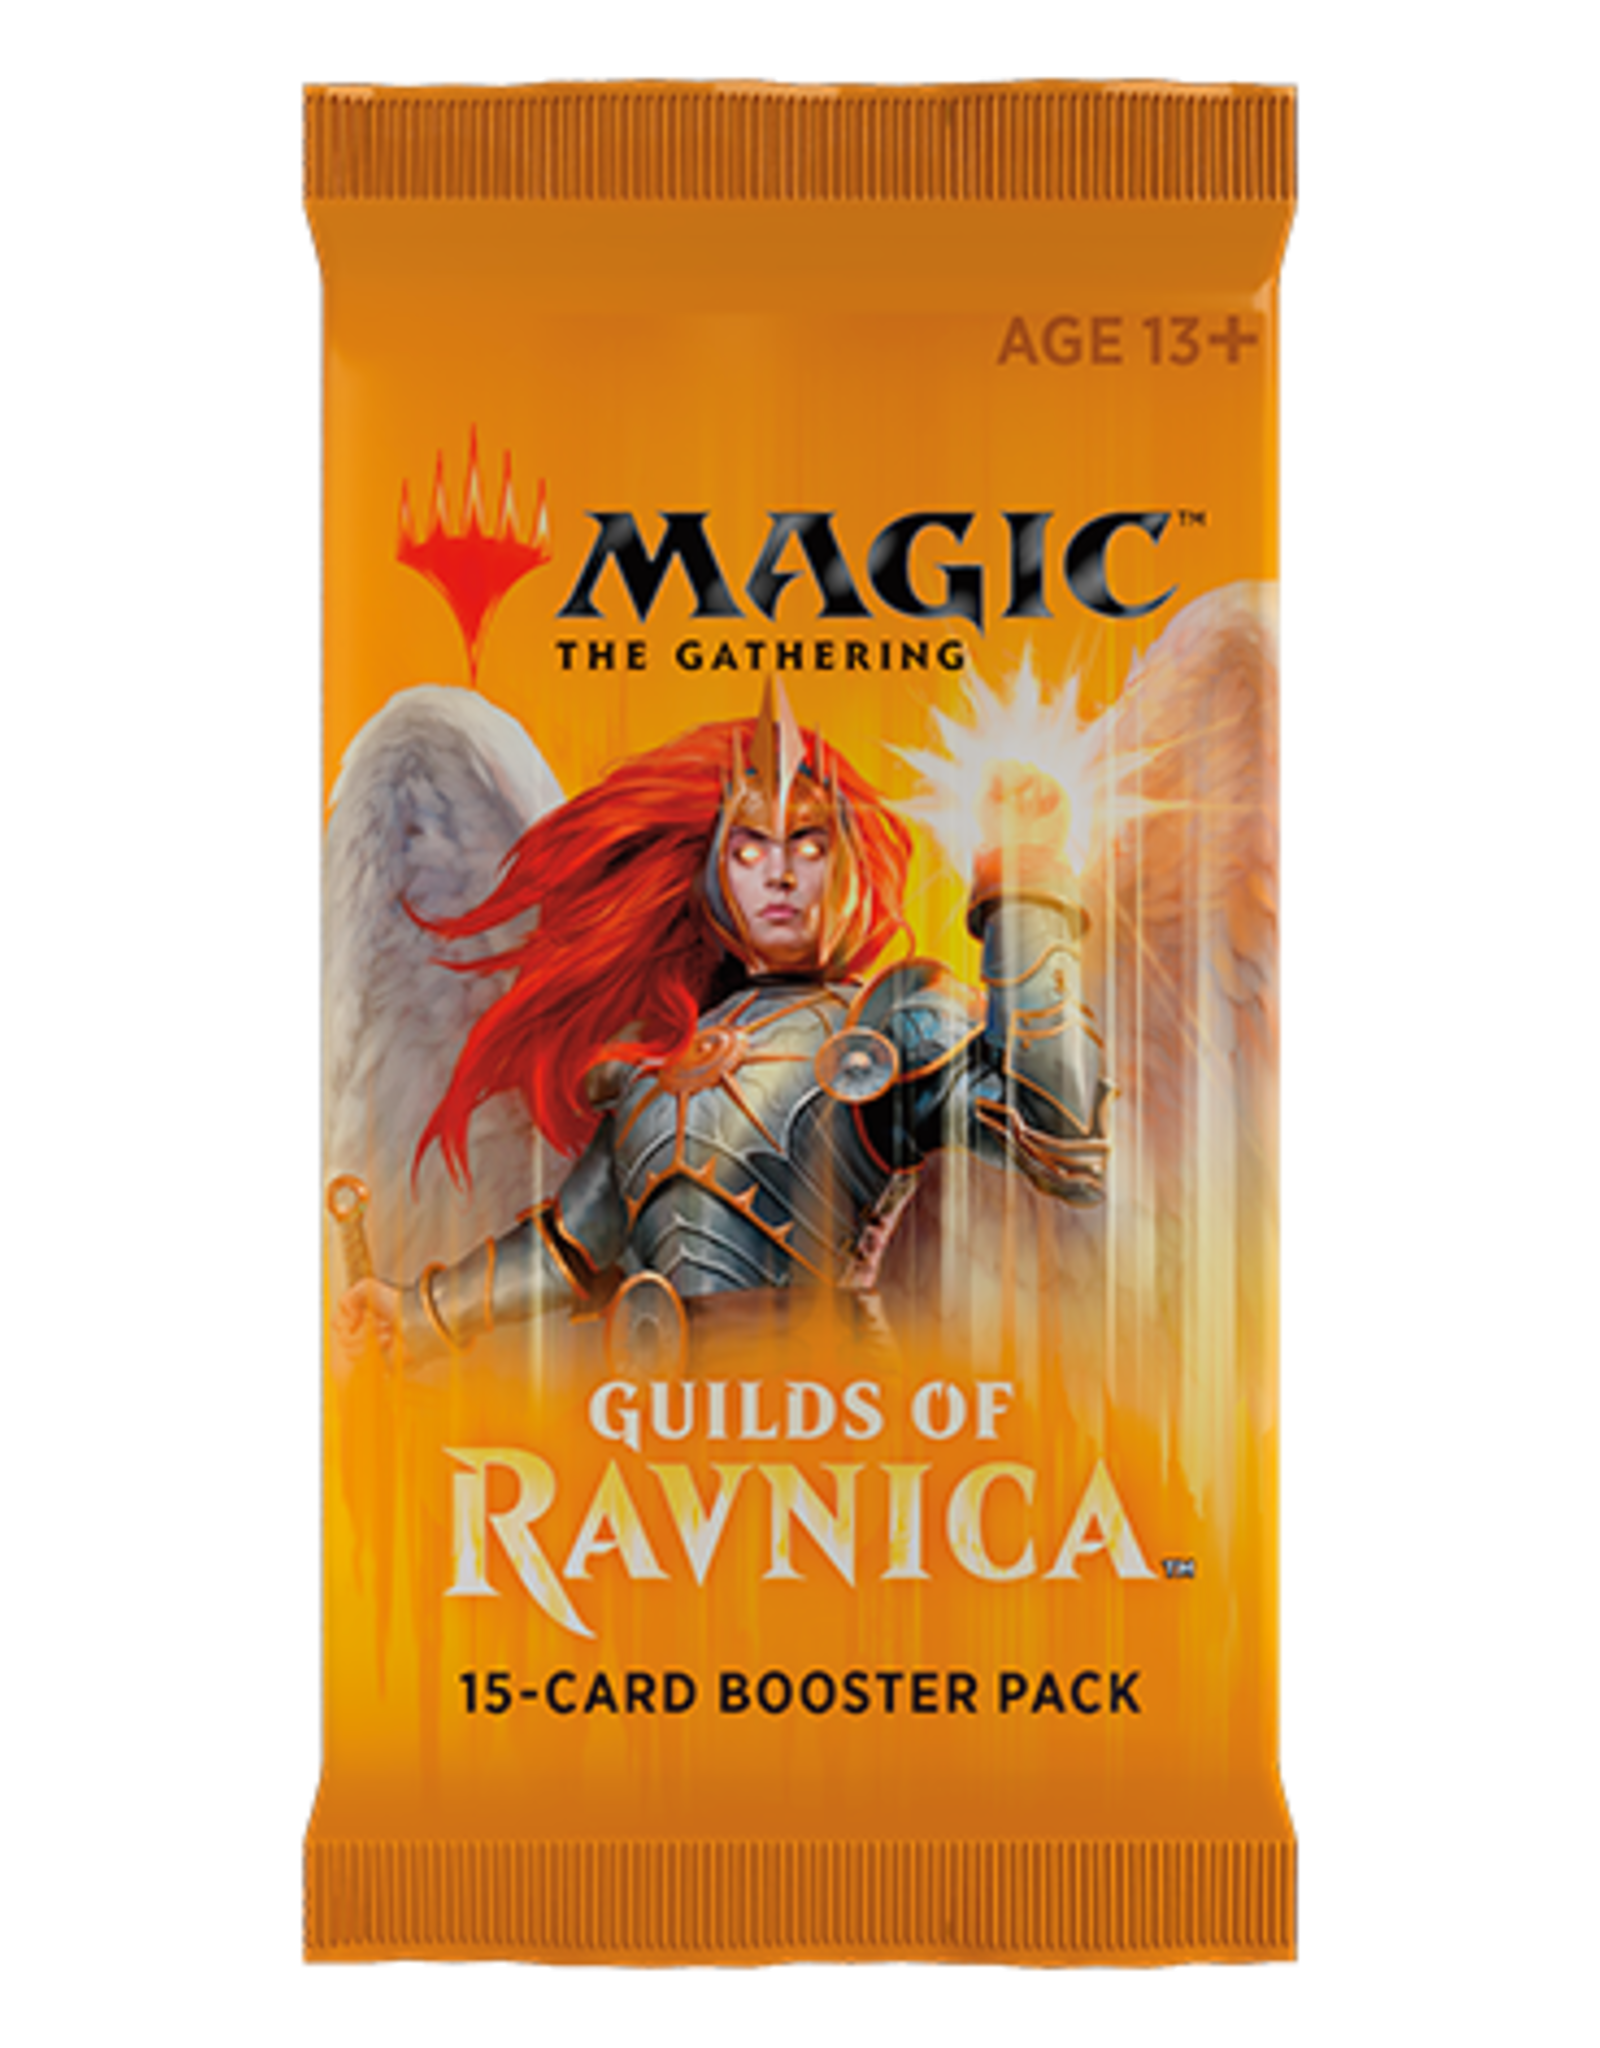 Magic: The Gathering Guilds of Ravnica Booster Box